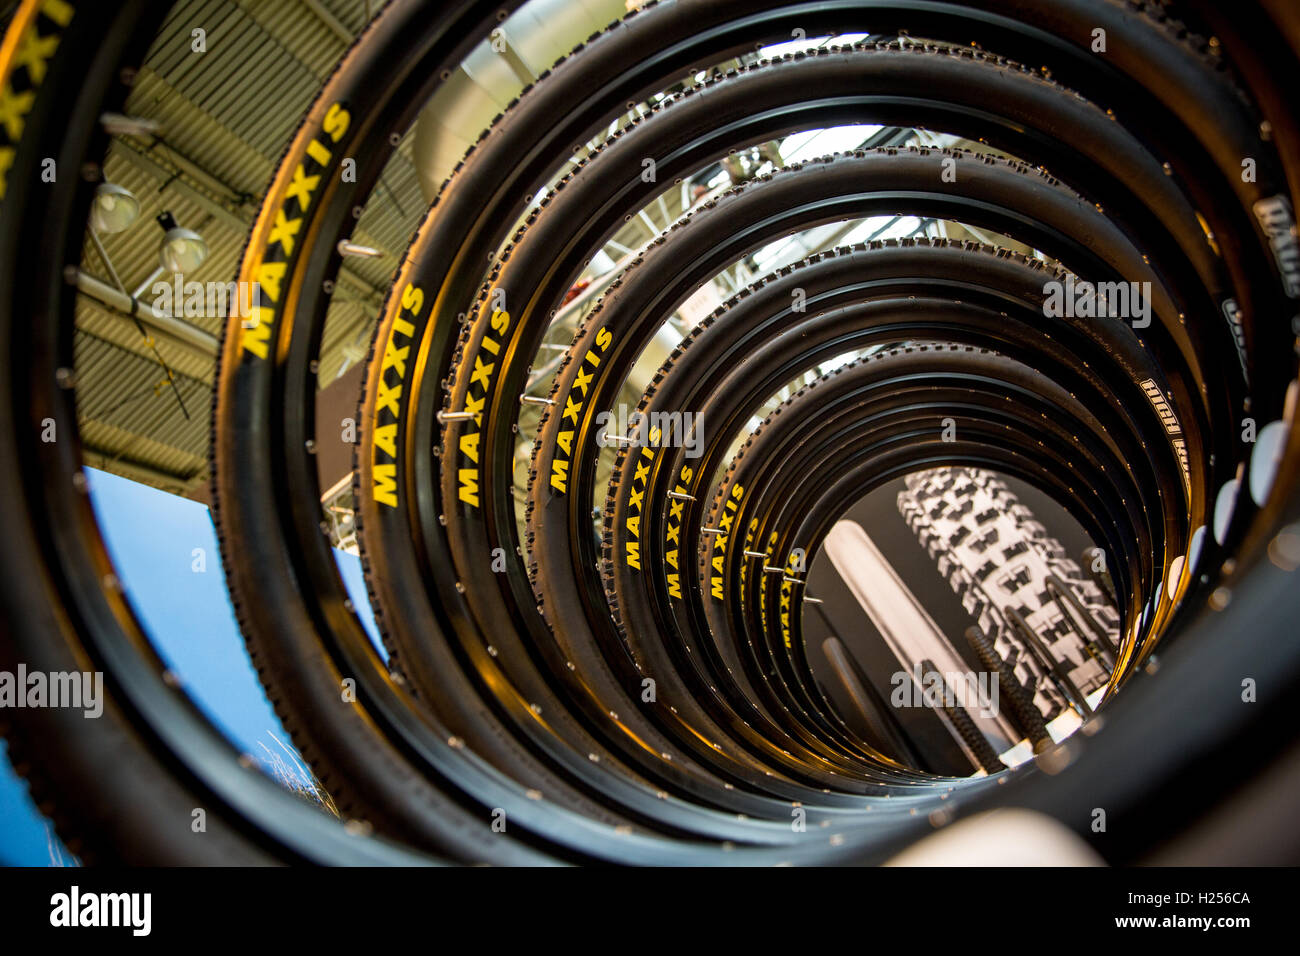 Birmingham, UK 24th Sep, 2016 Maxxis bike tyres on display on their stand Credit:  steven roe/Alamy Live News - Stock Image